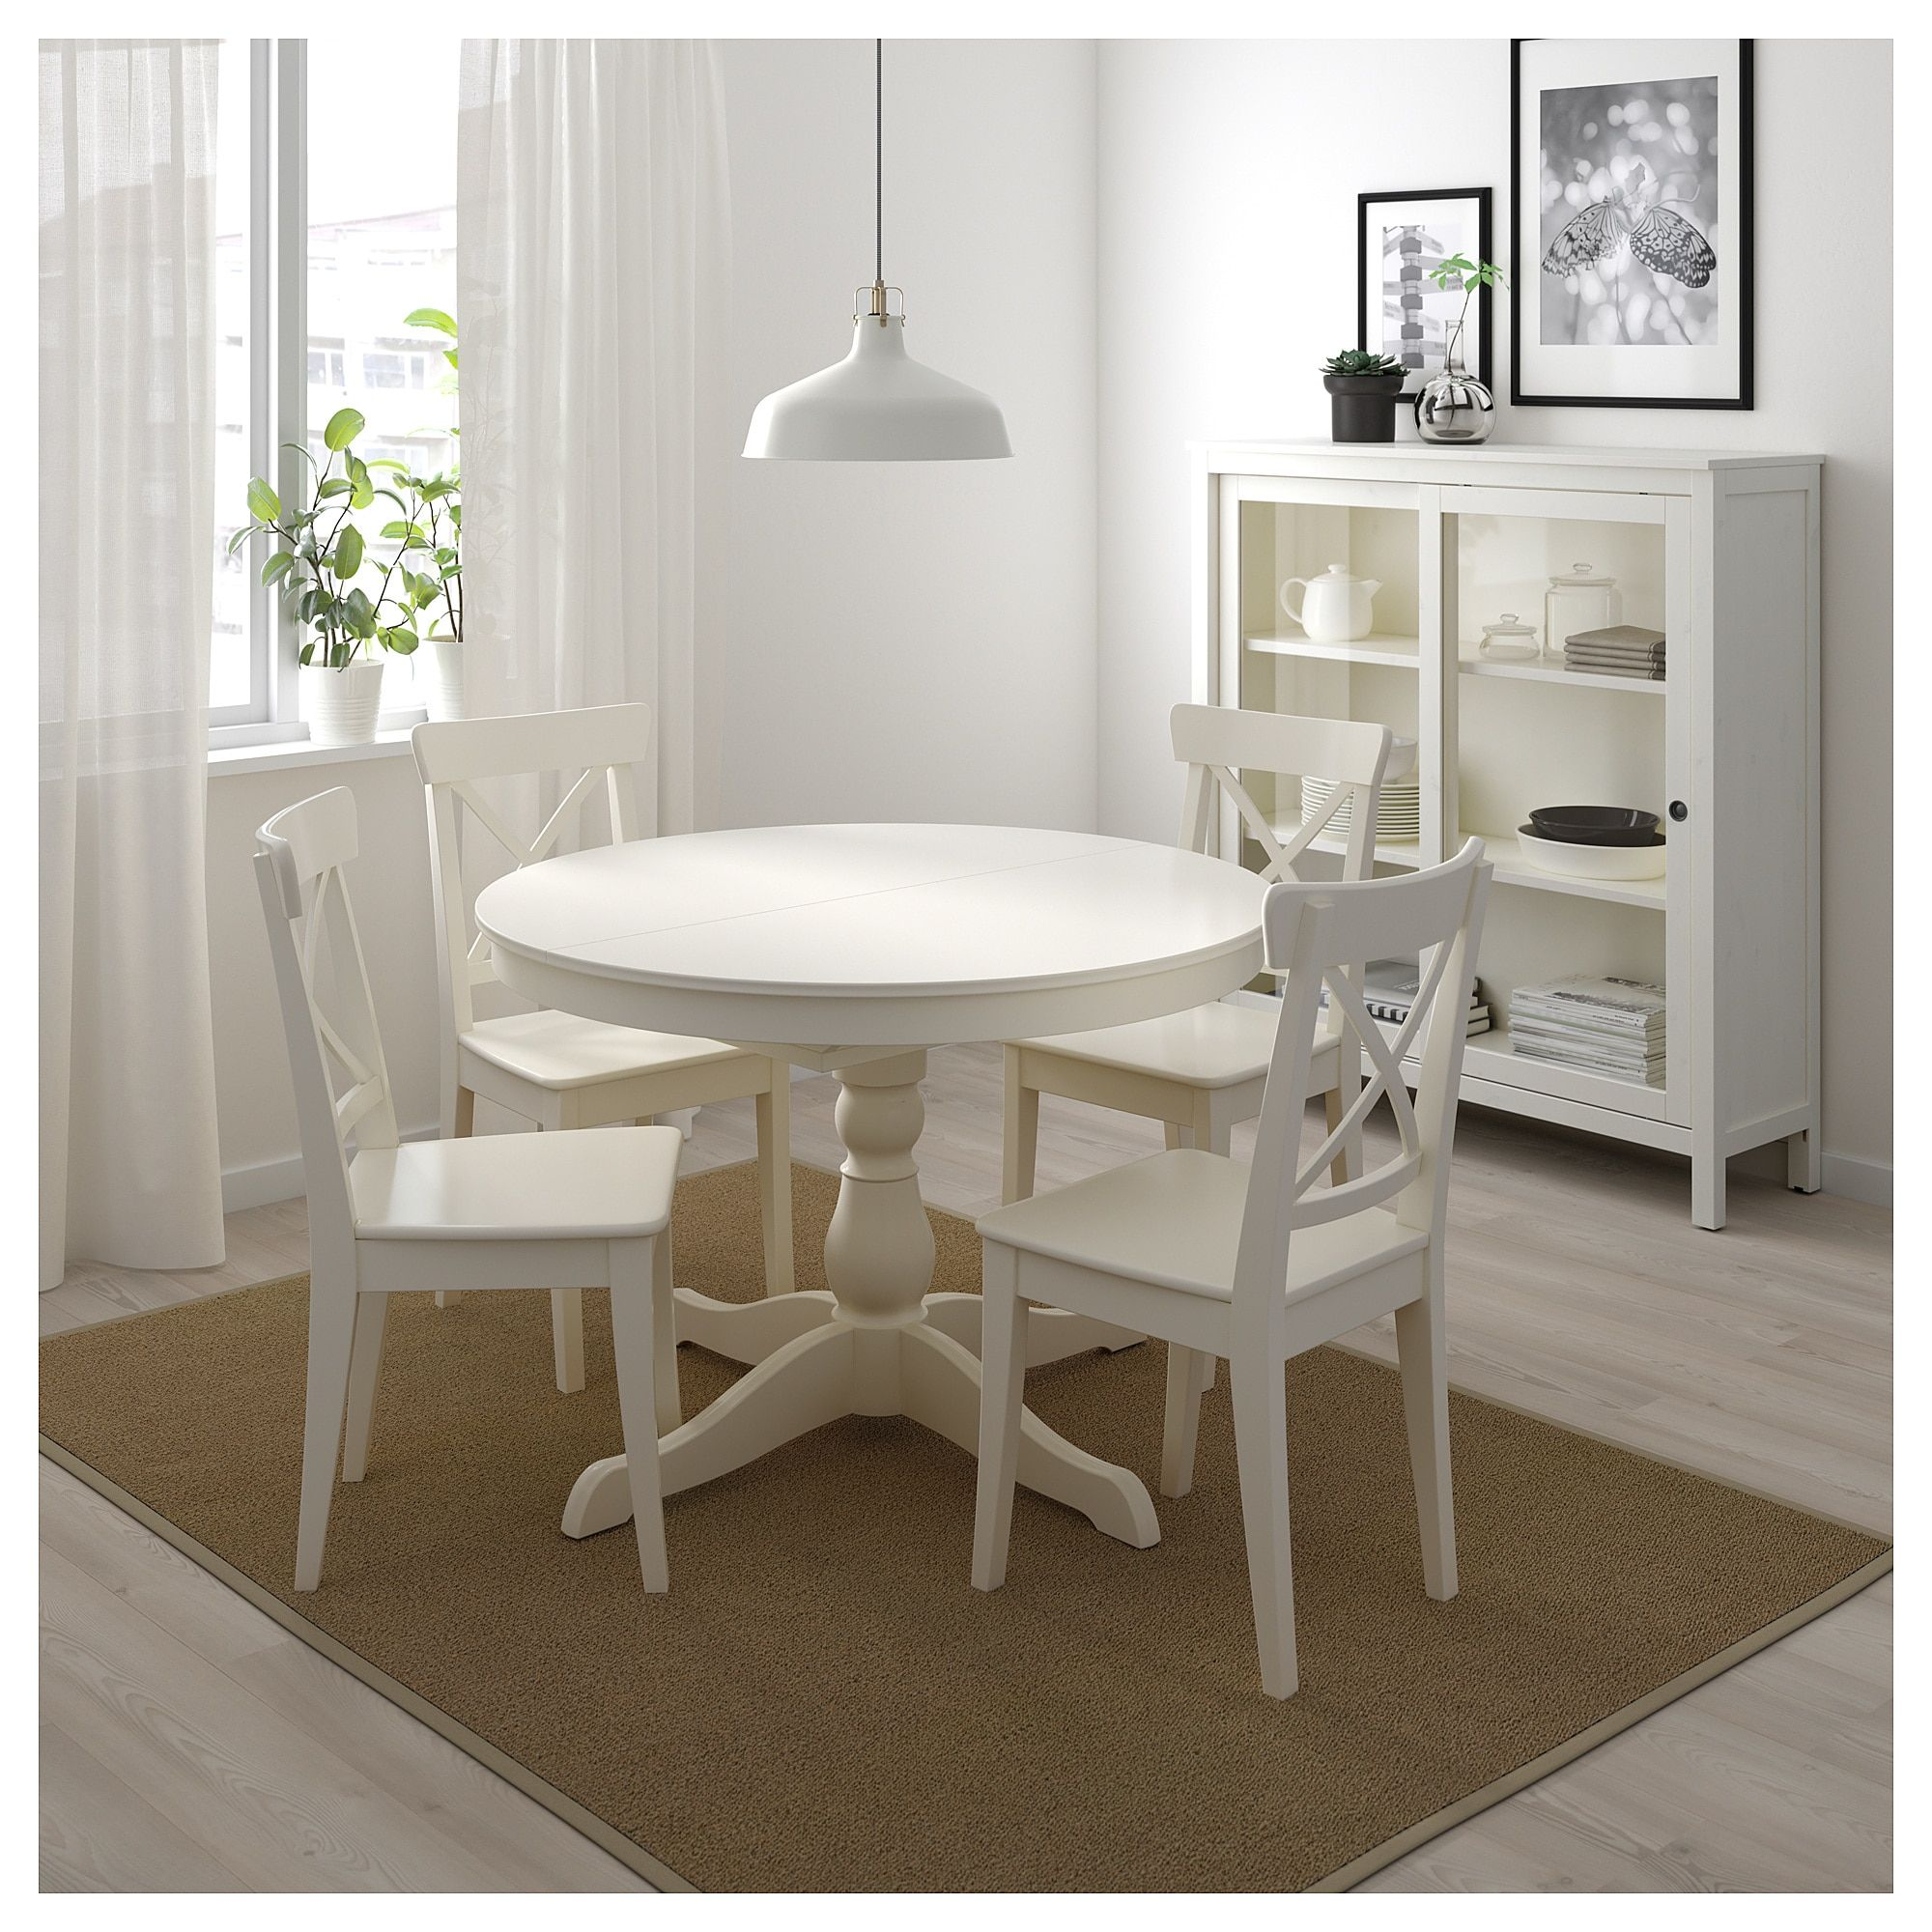 Table Extensible Ikea Ingatorp Table Extensible Blanc My Future Home Salle à Manger